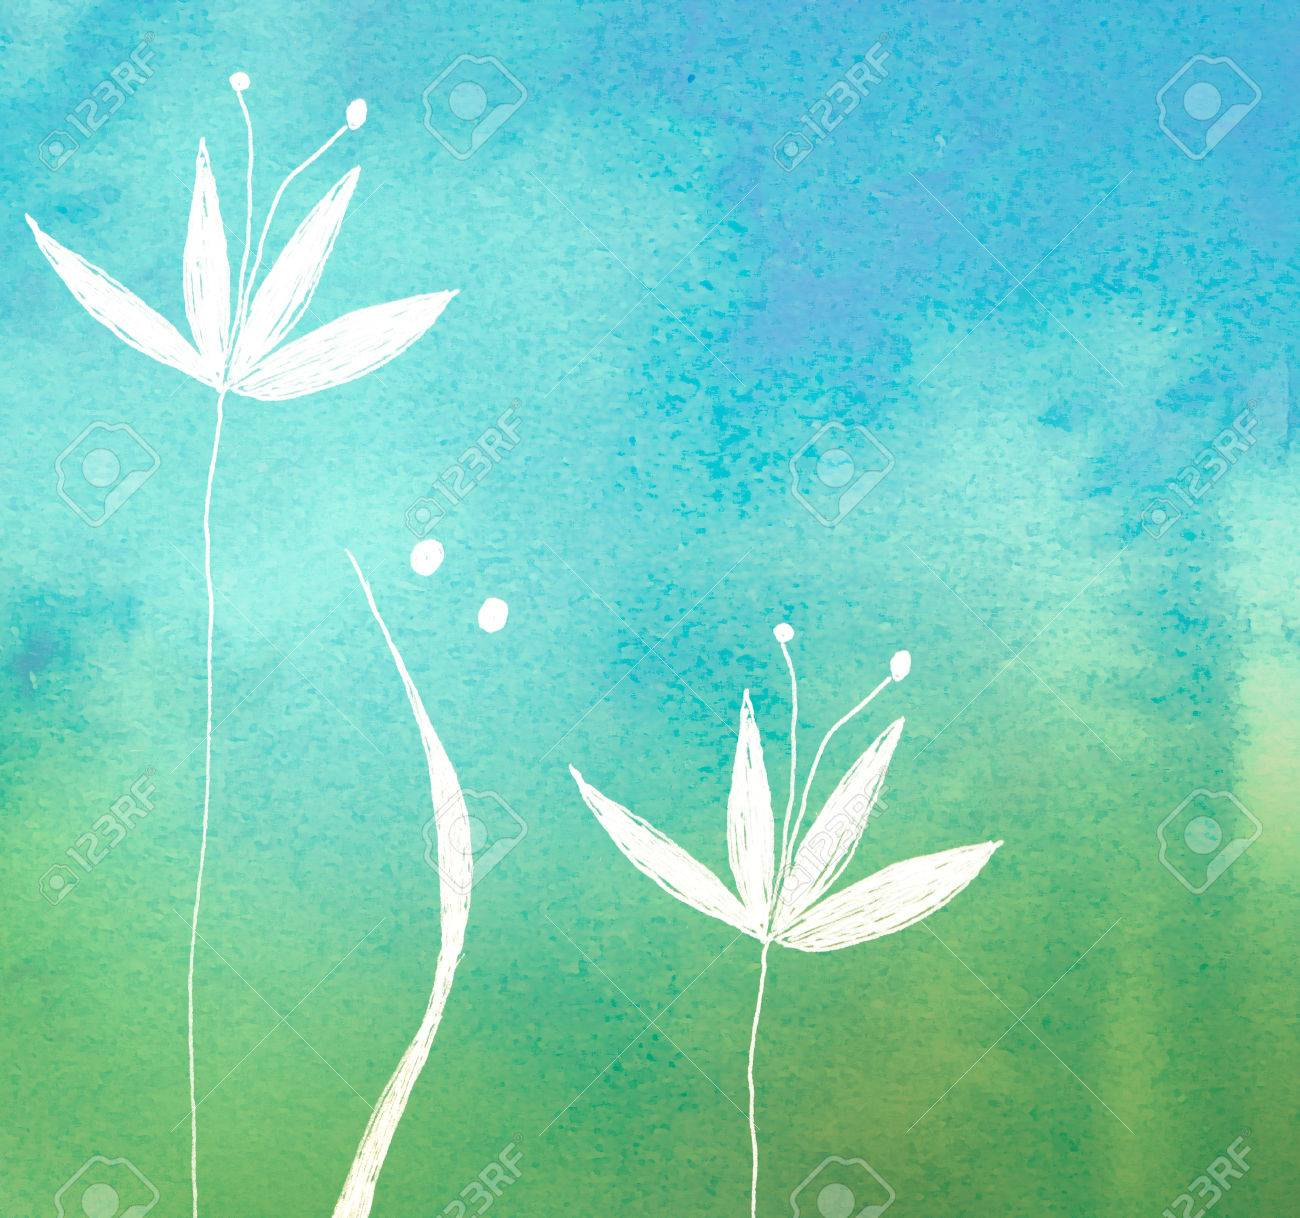 white flower on green painted watercolor background - 50343700